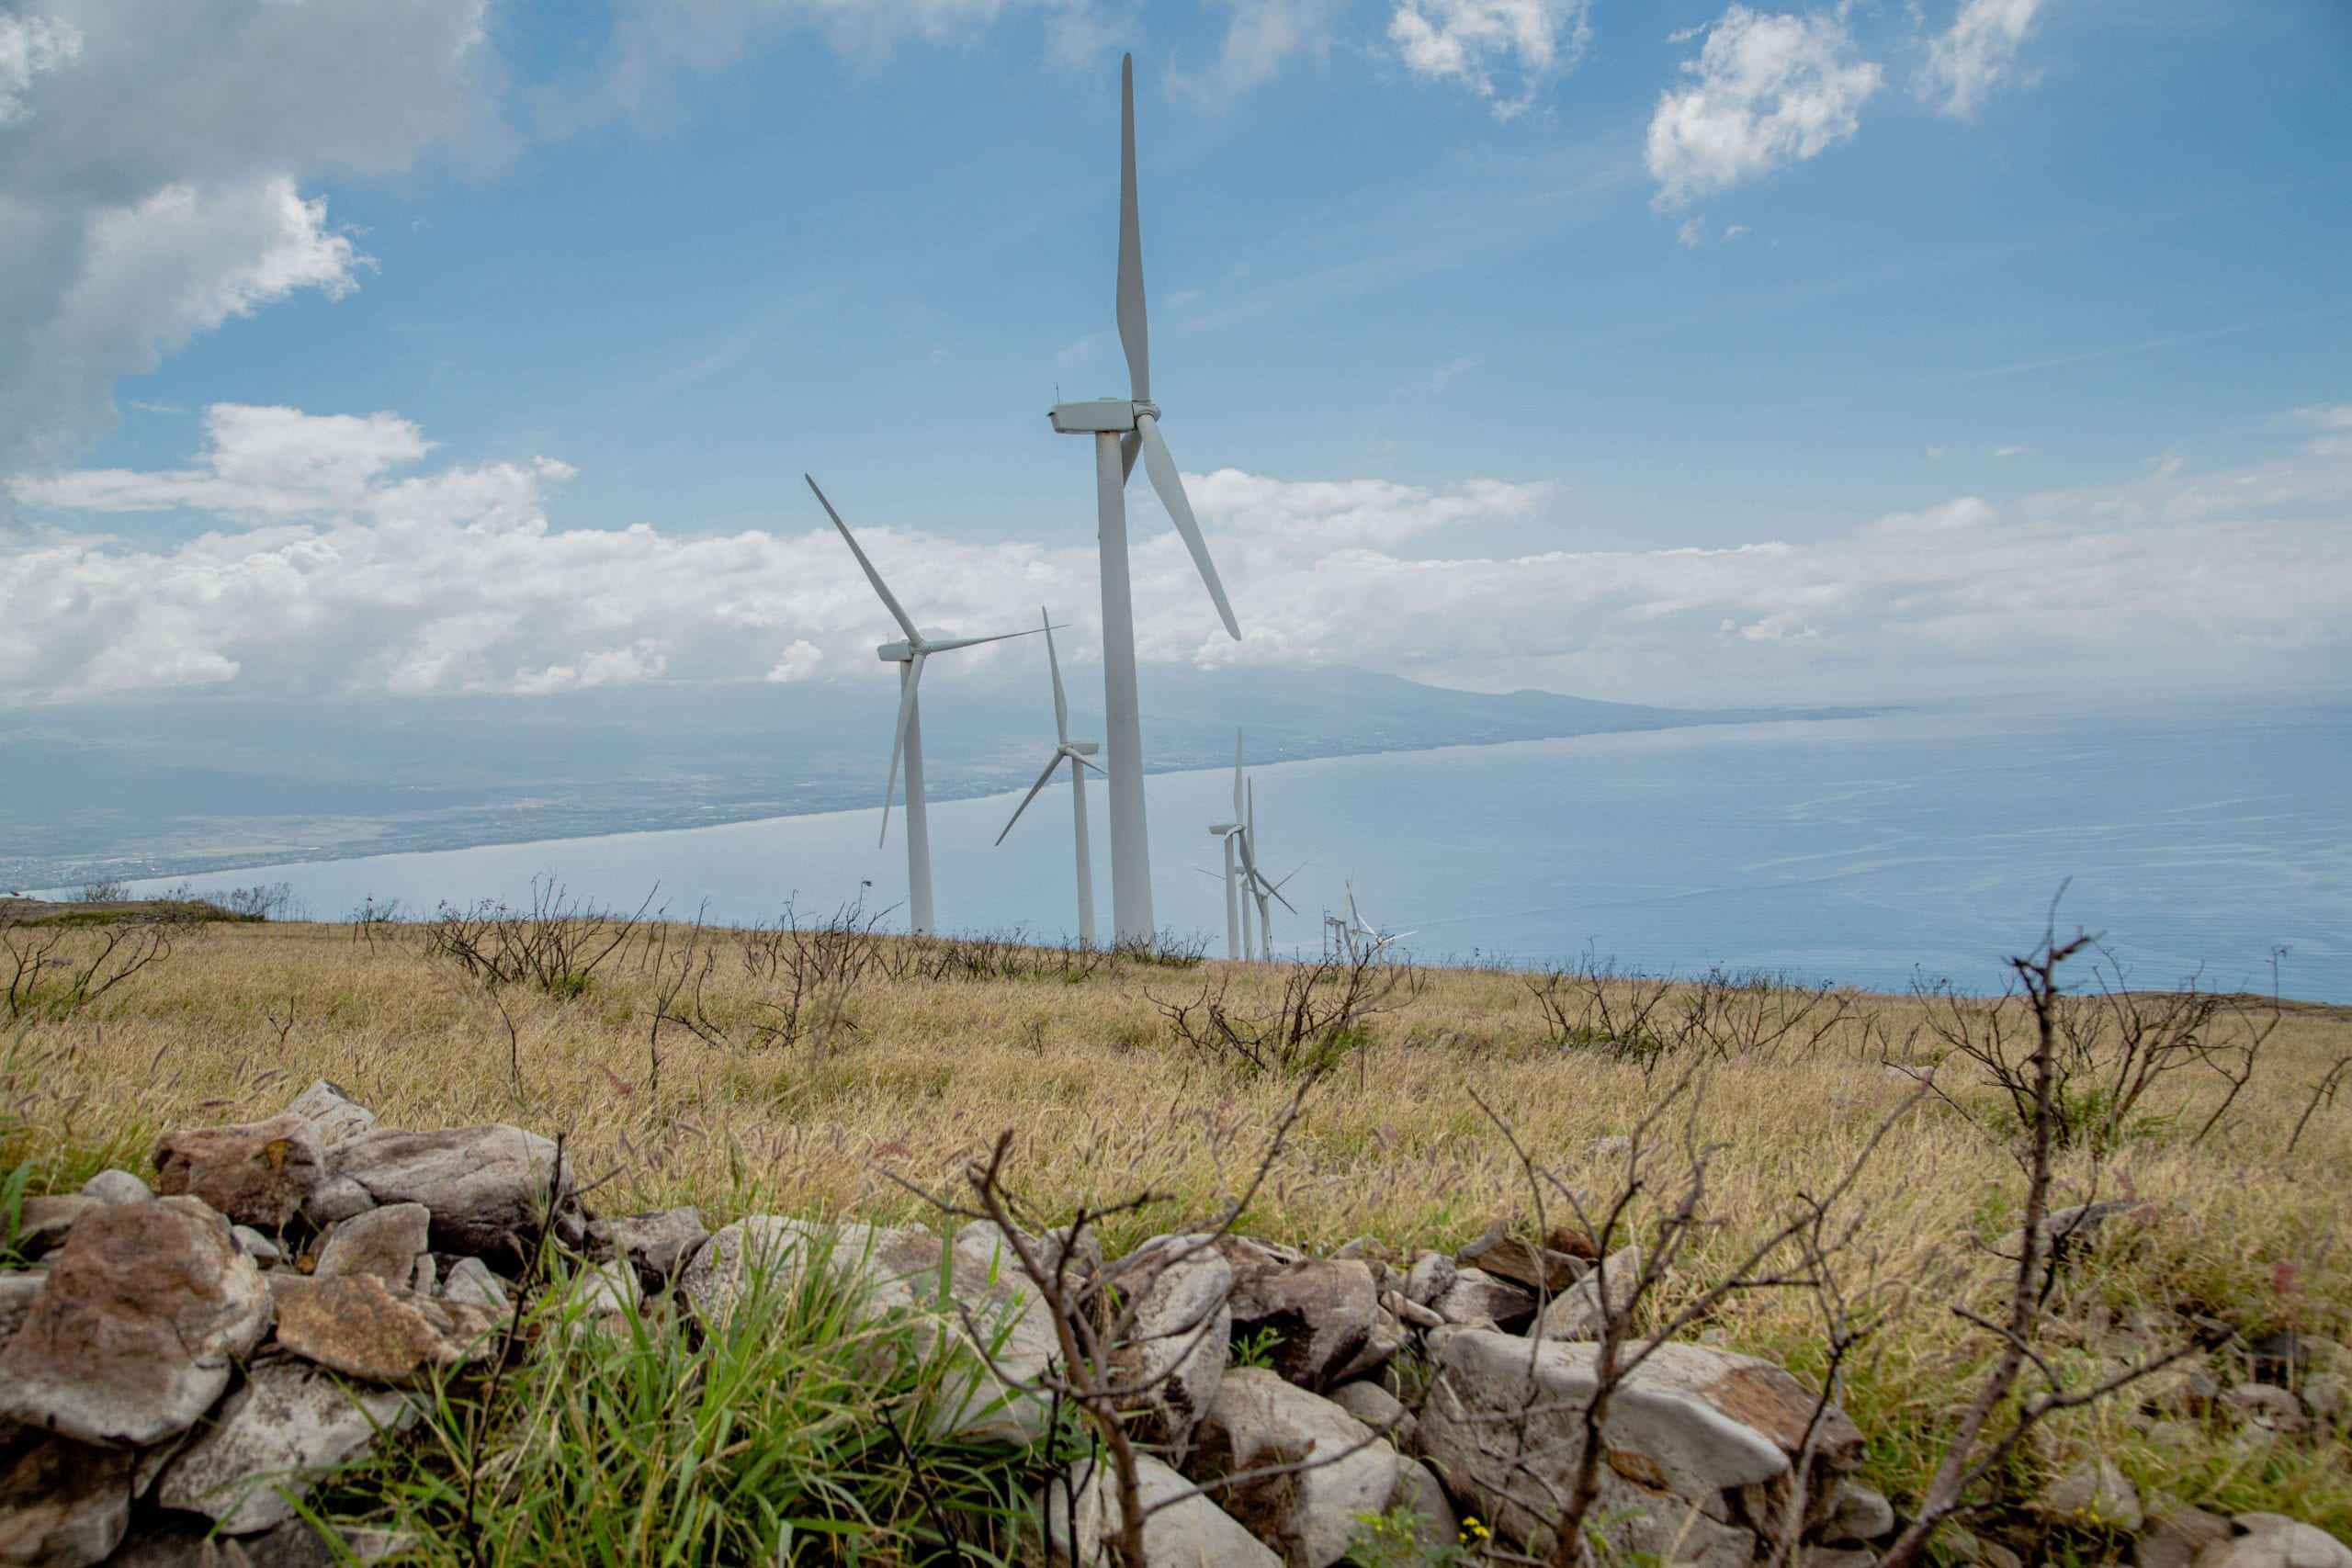 The Windmills of the Pali hIke